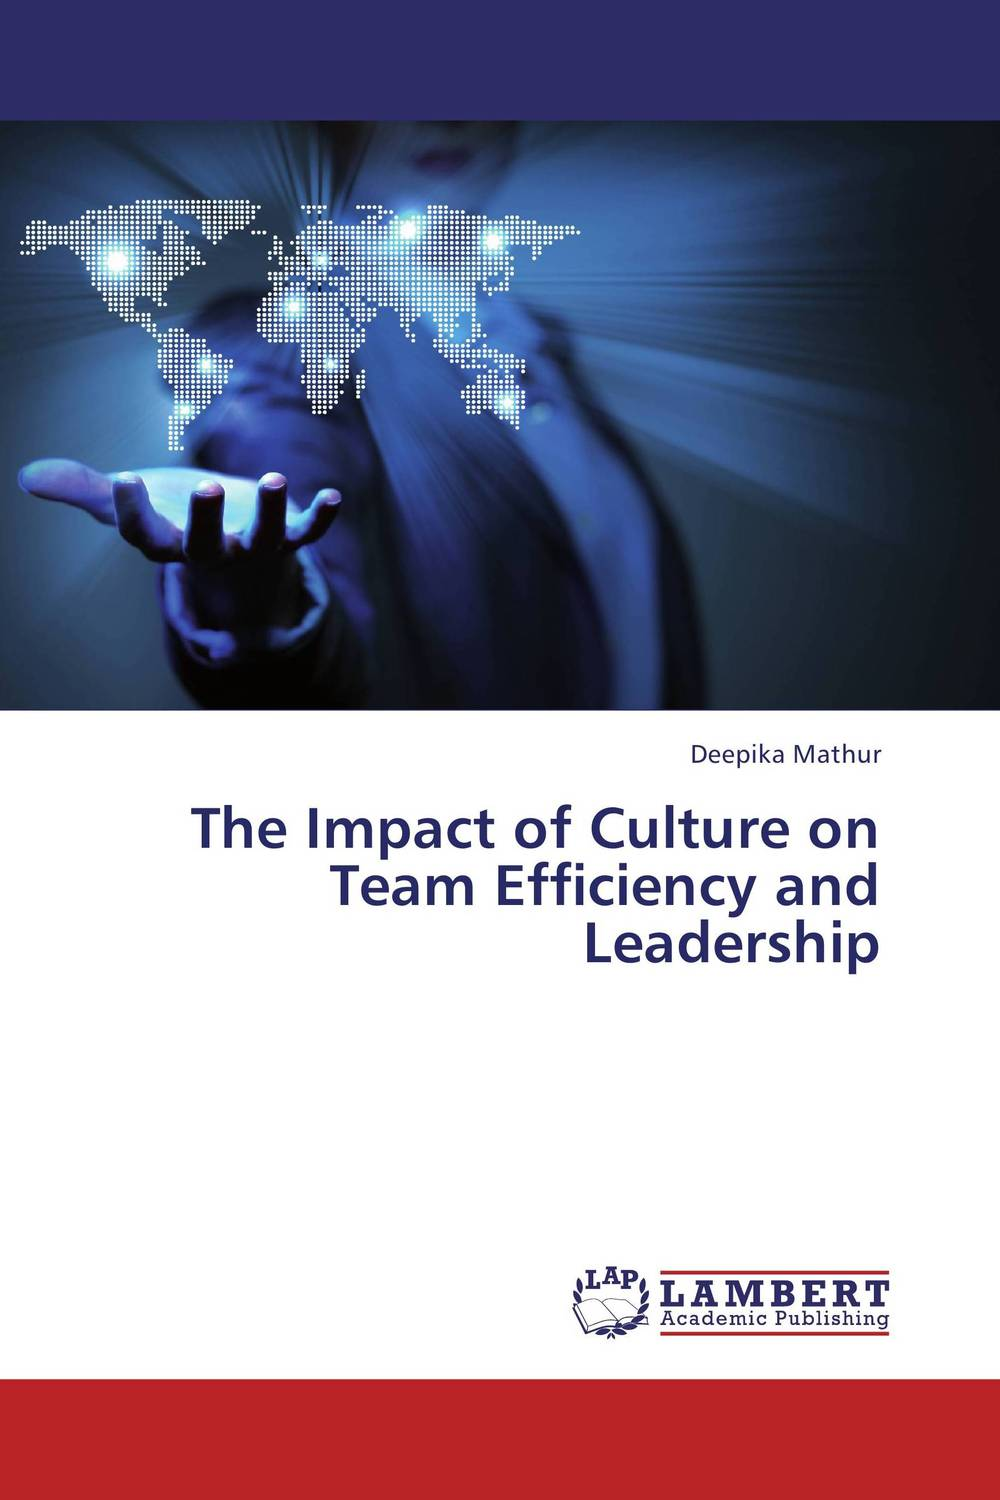 где купить  The Impact of Culture on Team Efficiency and Leadership  дешево